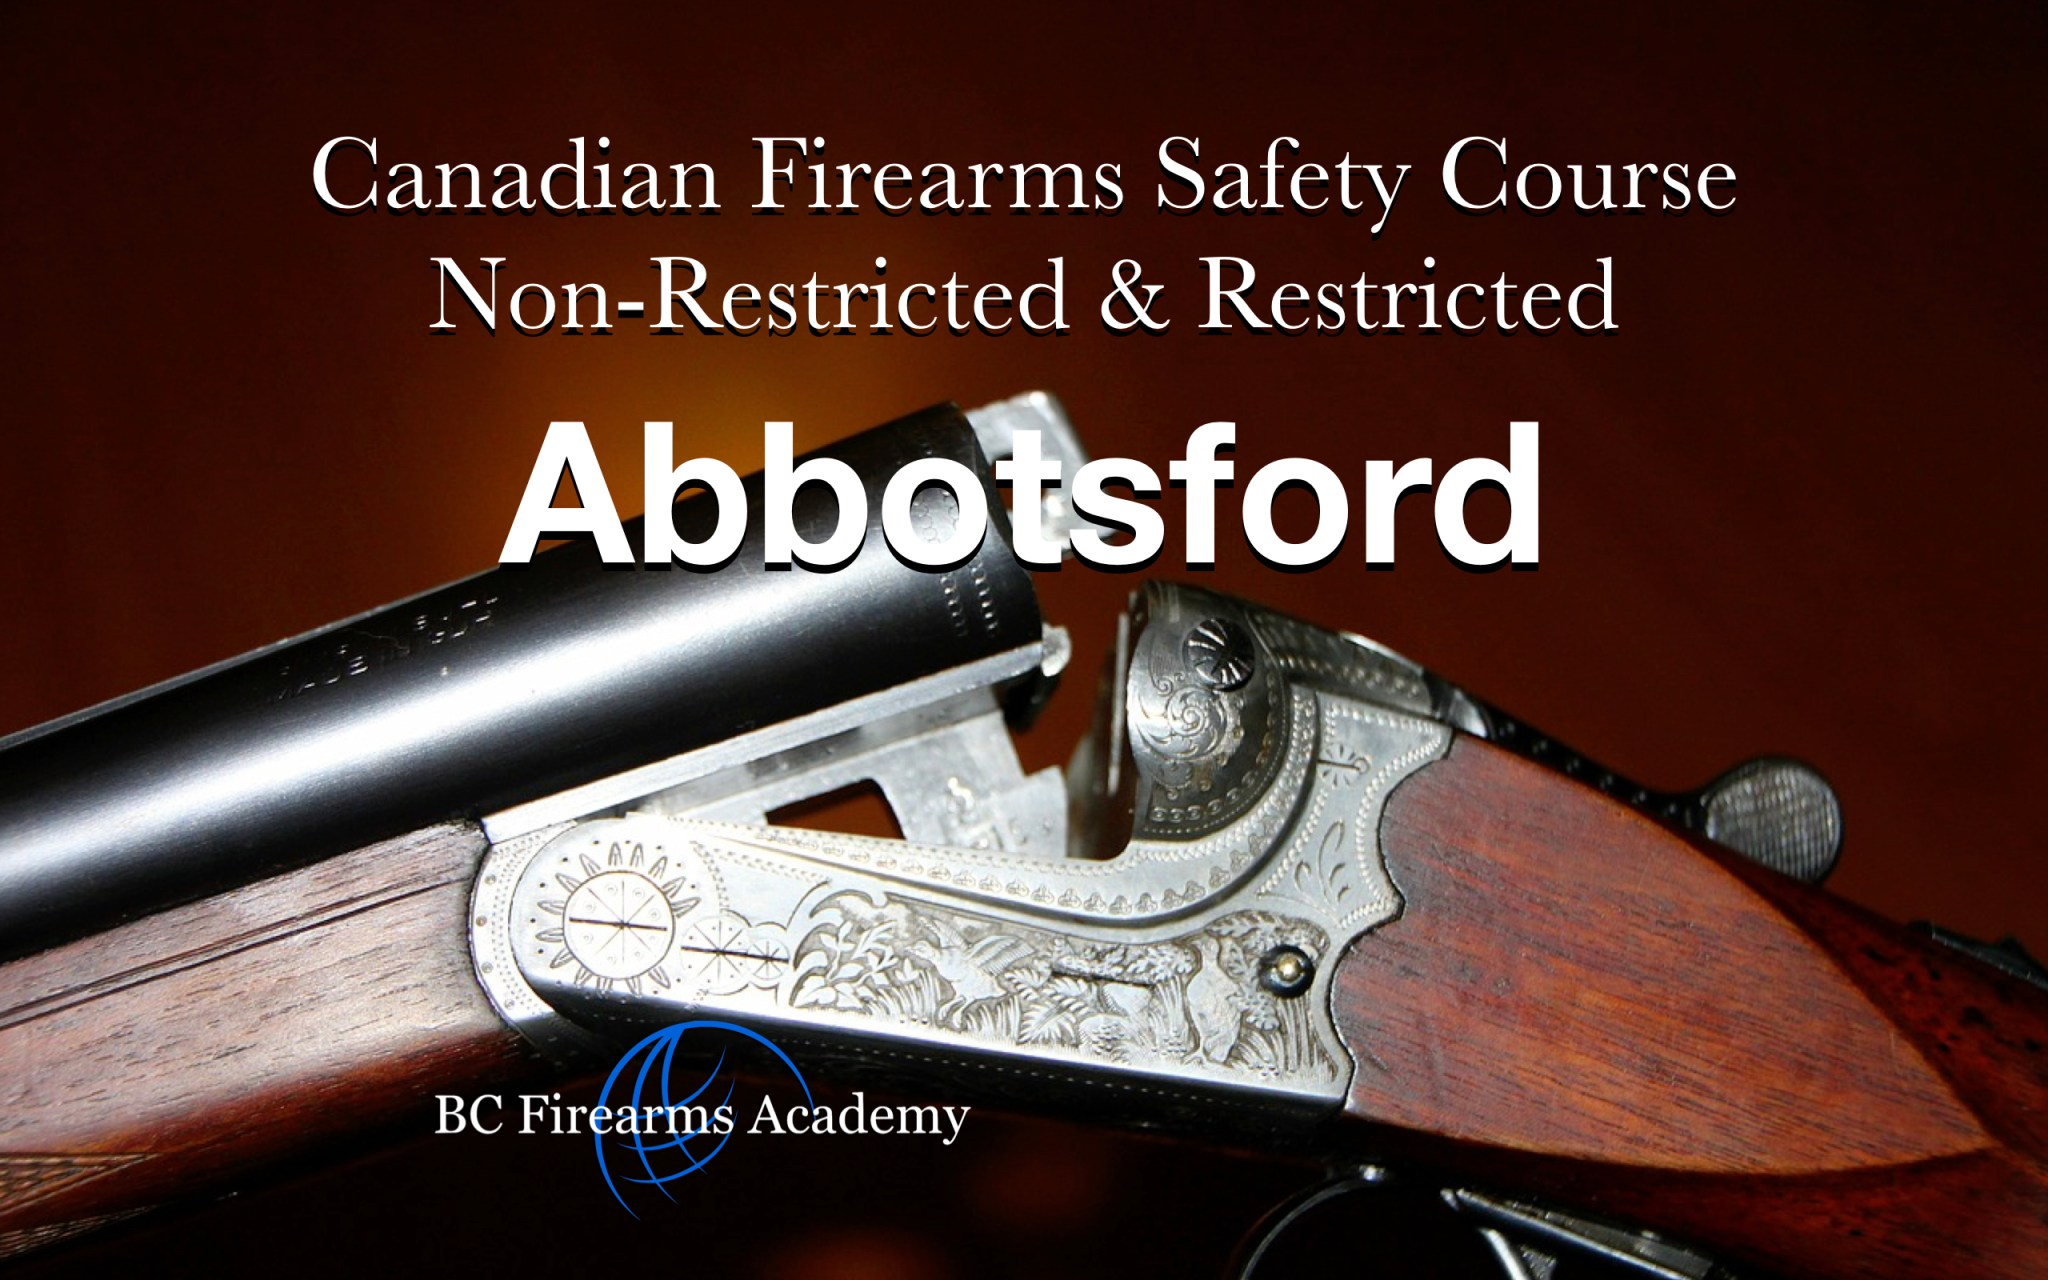 COMBINED CFSC/CRFSC (PAL/RPAL) Abbotsford Thurs-Fri April 4-5